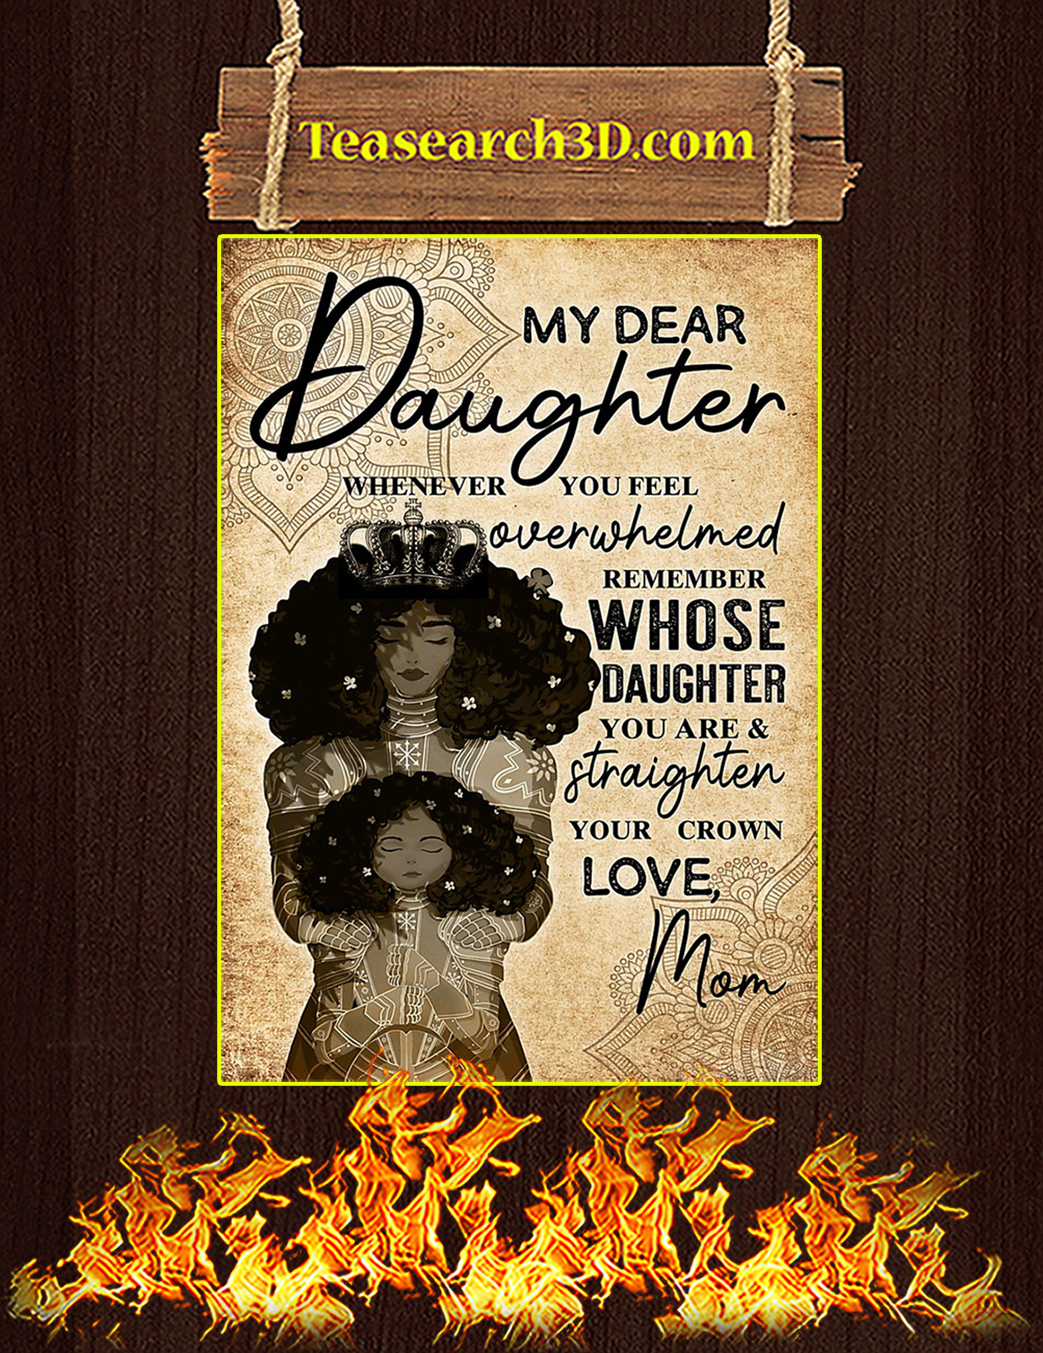 My dear daughter whenever you feel black mom poster A1